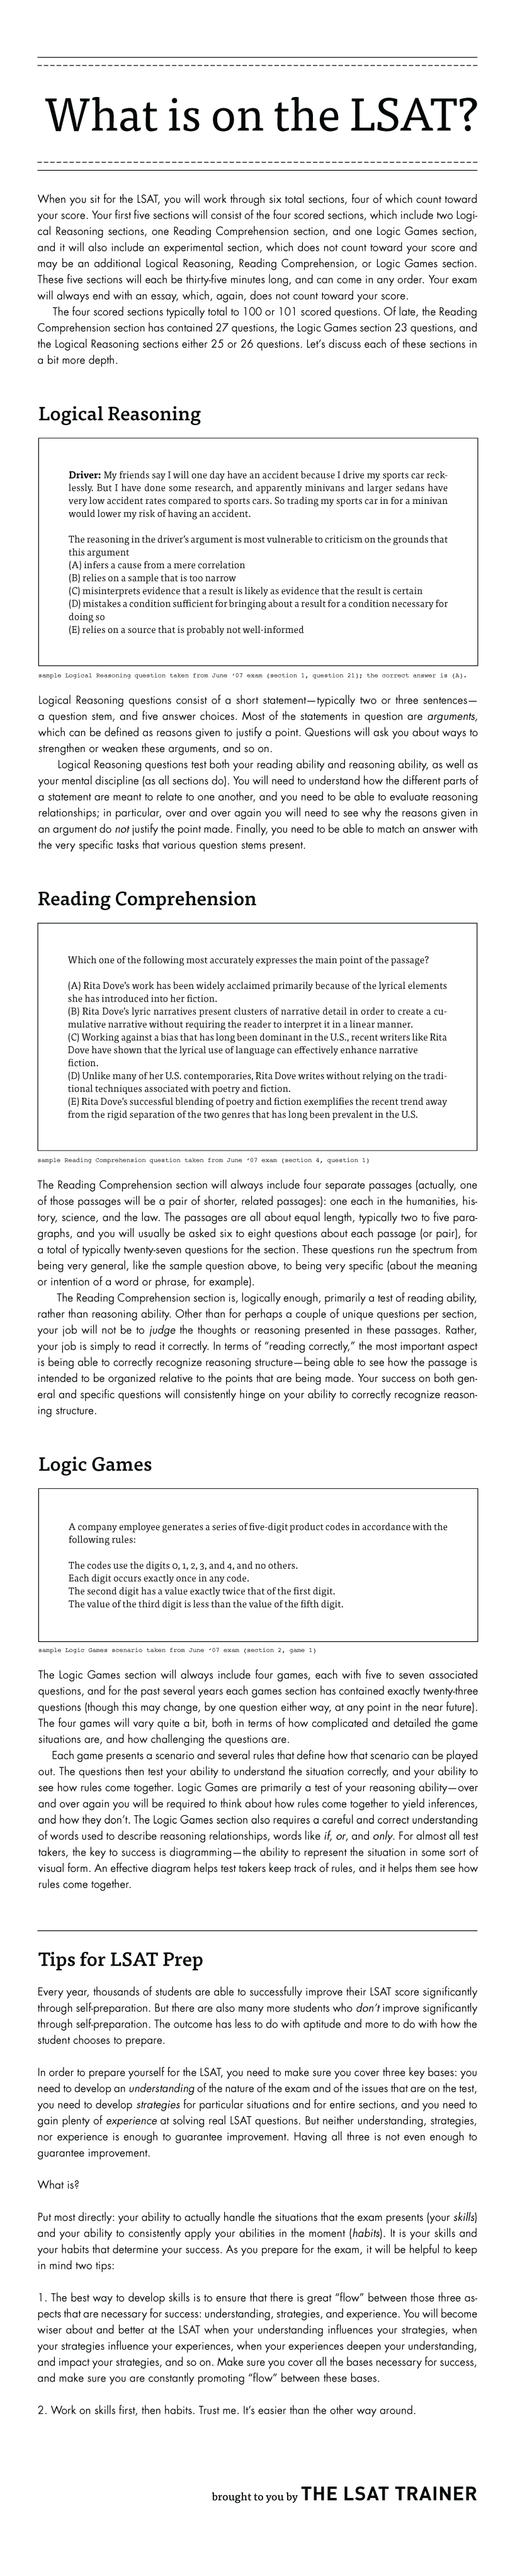 logical reasoning lsat how to read